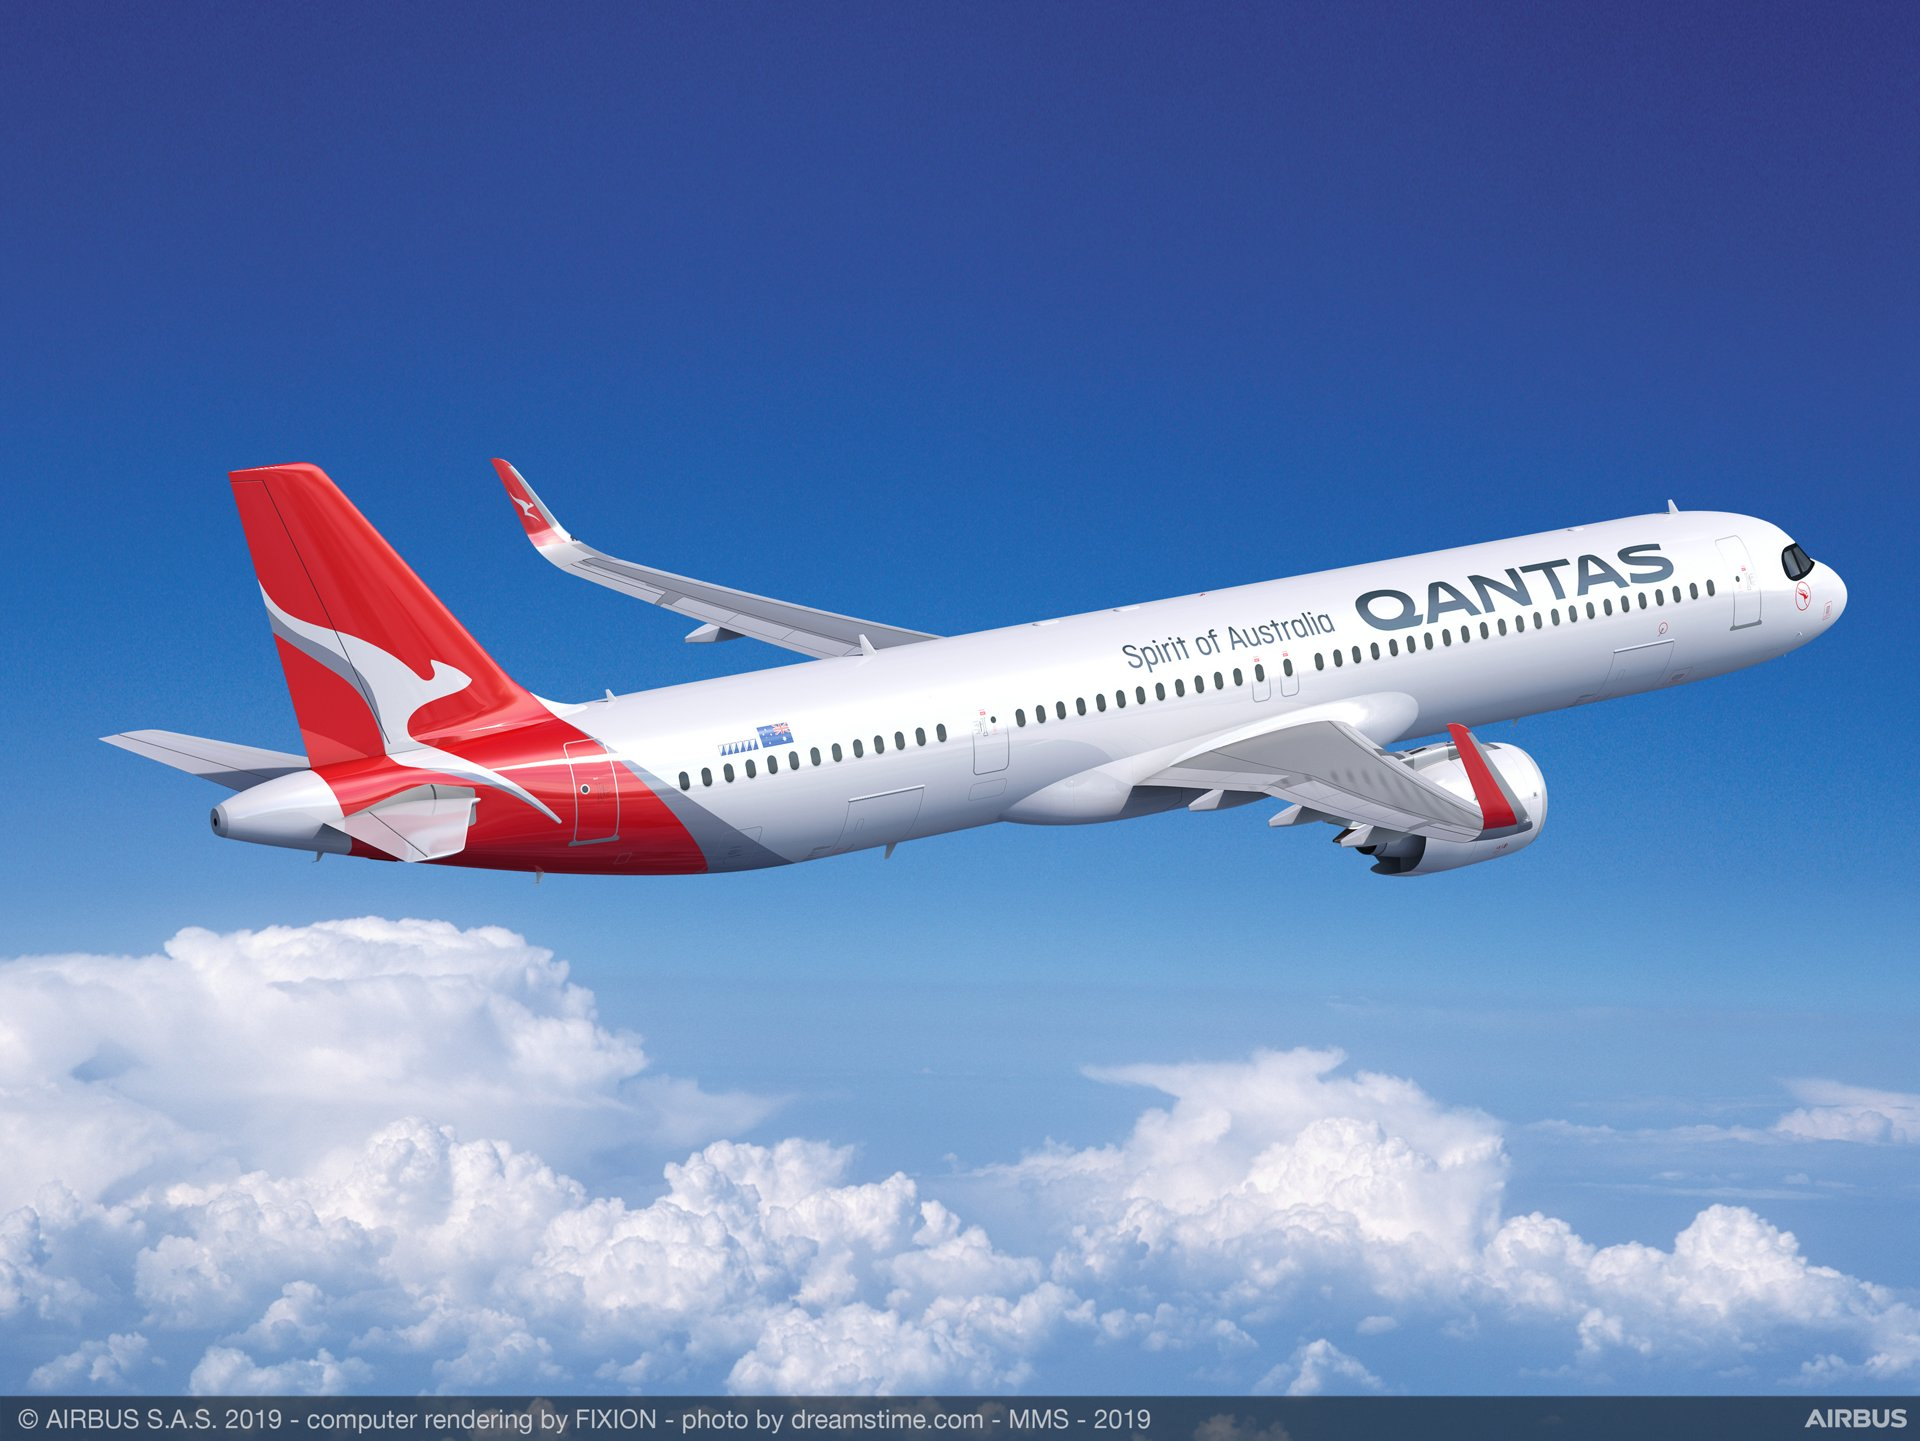 Qantas Airways Limited's agreement with Airbus for 36 A321XLR jetliners will allow Australia's Qantas Group to improve its network and fleet flexibility